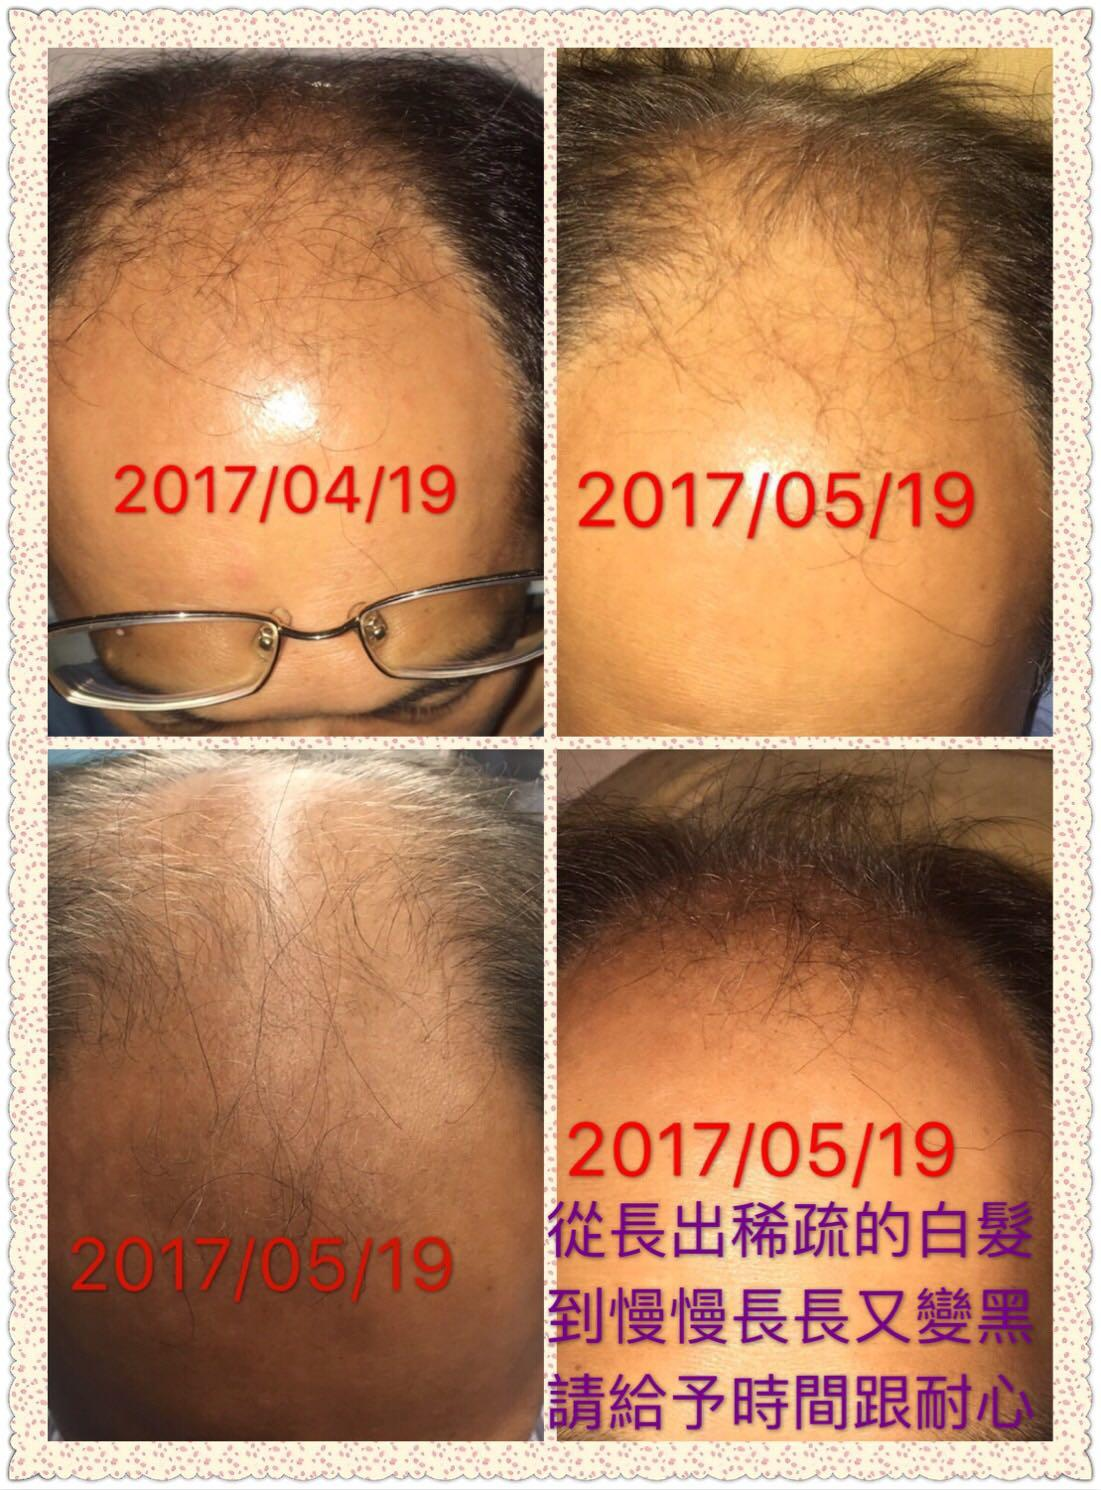 Hair start to grow after applying umo silica - after applying umo silica continued 2